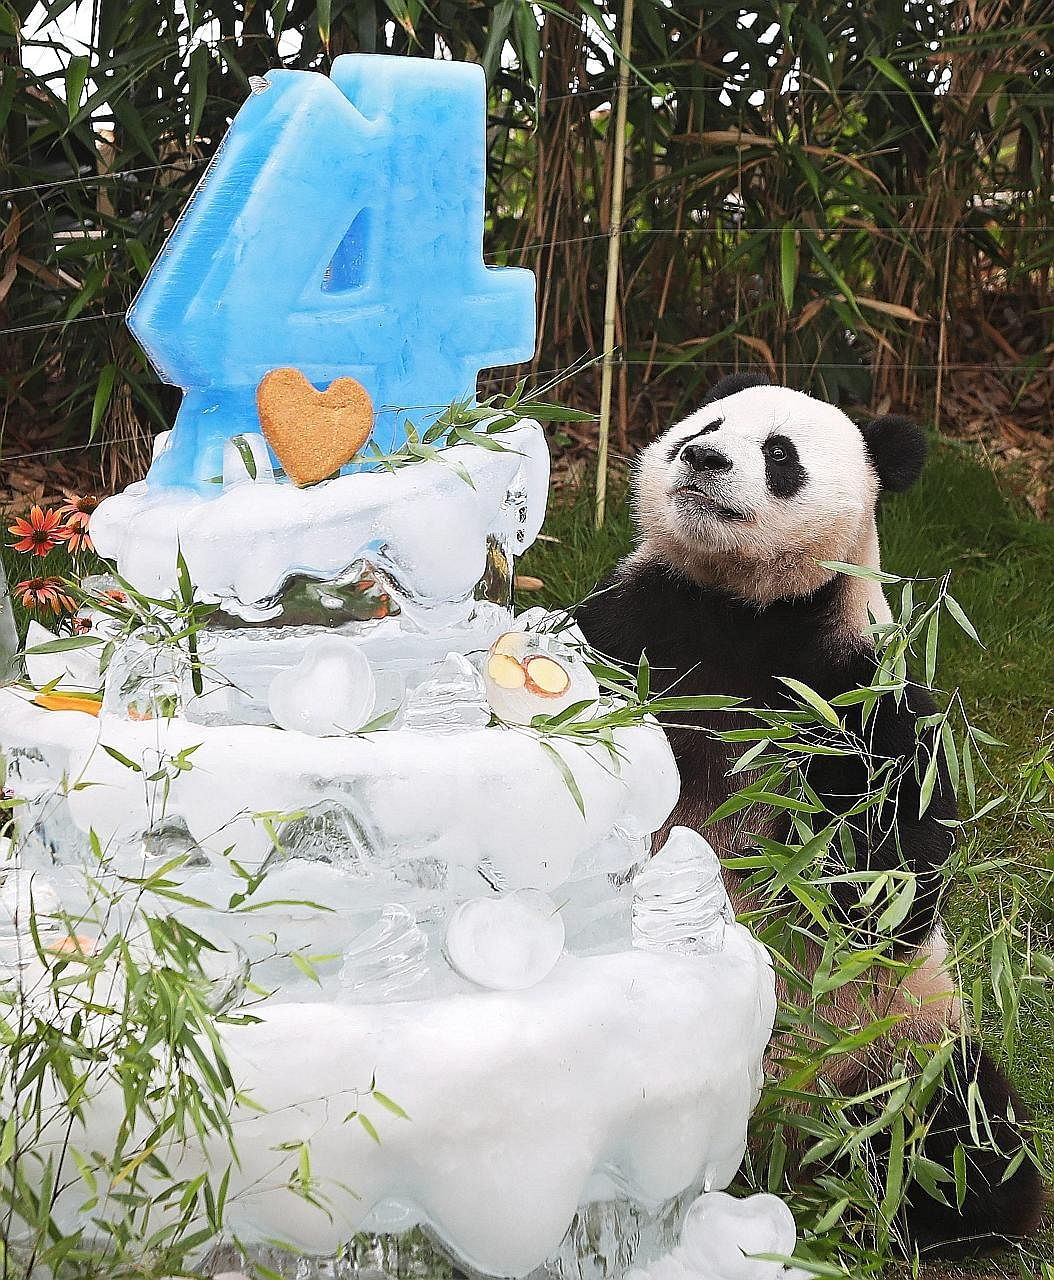 A giant ice cake to celebrate giant panda Le Bao's upcoming birthday at South Korea's Everland amusement park in Yongin, Gyeonggi province, yesterday. The male panda, part of a pair on loan from China, arrived in South Korea in March. Le Bao turns fo